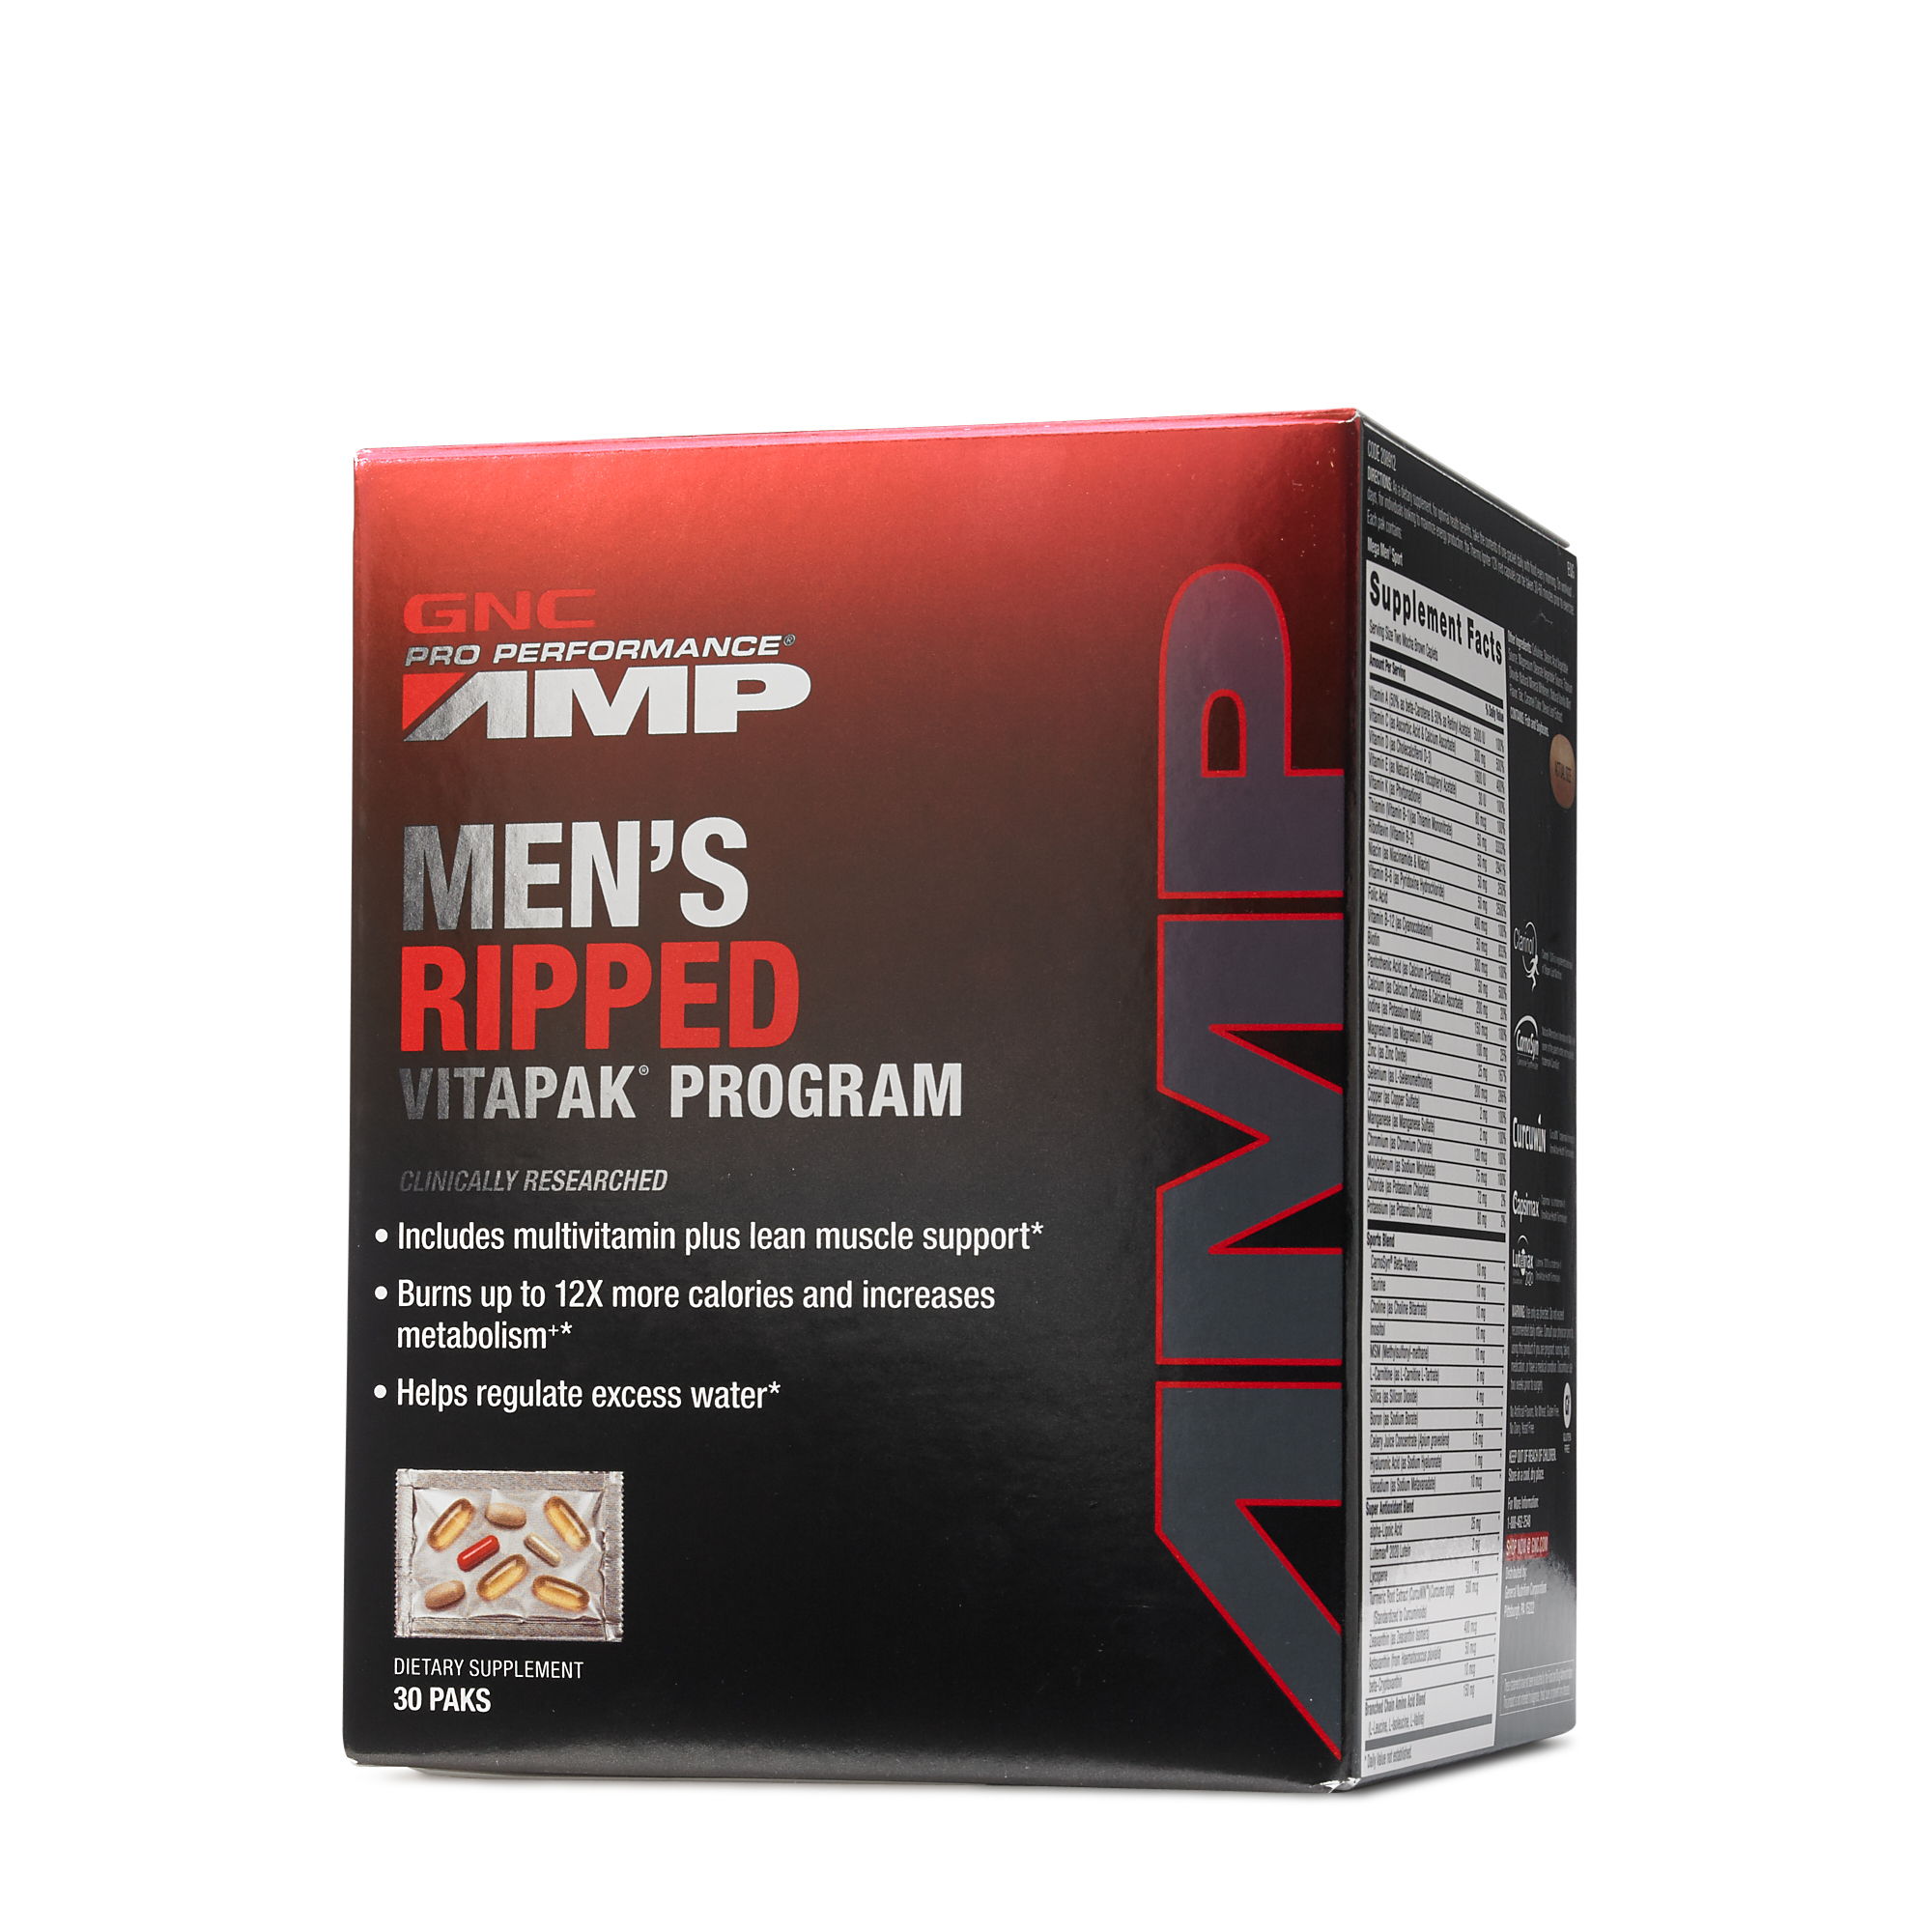 Gnc Pro Performance Amp Mens Ripped Vitapak Program Elite Labs Mass Muscle Gainer 20 Lbs